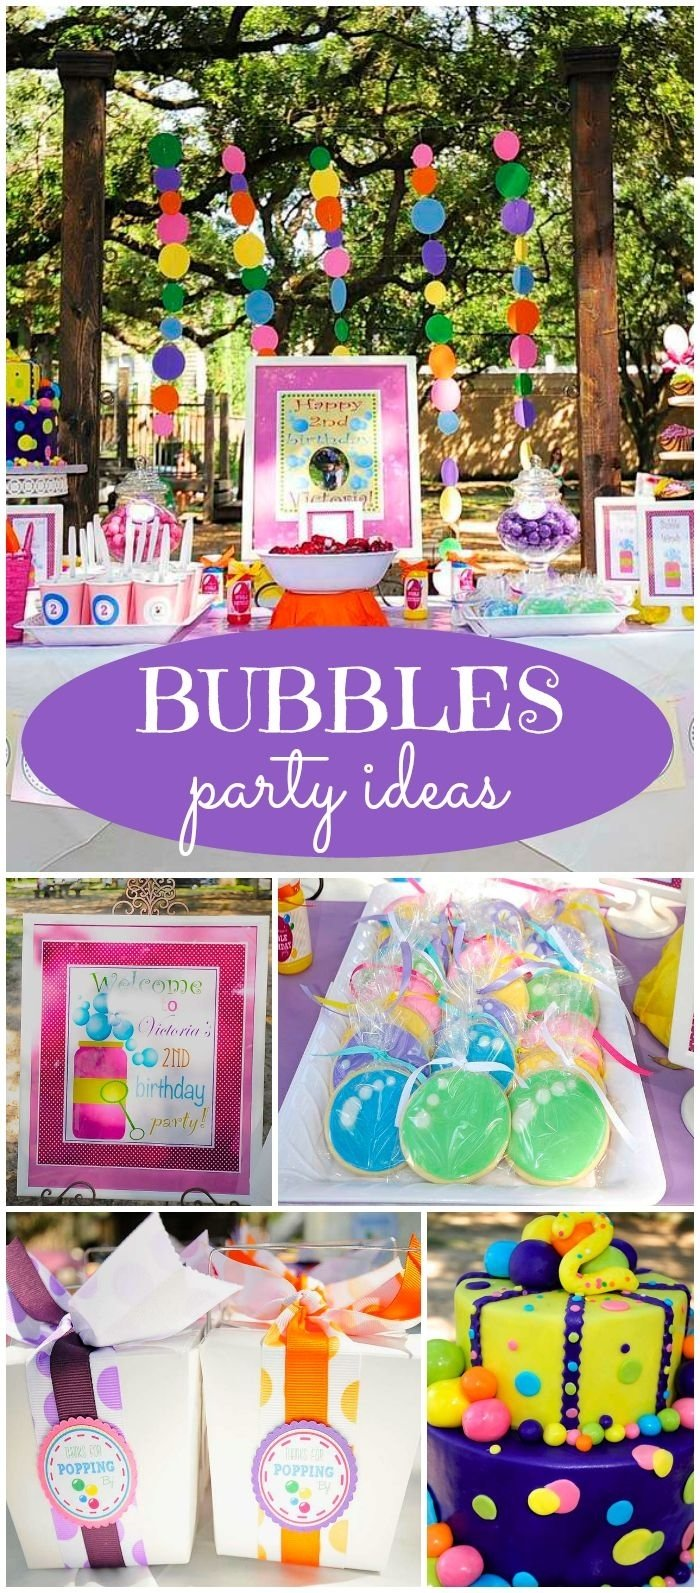 10 Stylish 2Nd Birthday Party Ideas Girl bubbles birthday victorias bubbles themed 2nd birthday party 2020